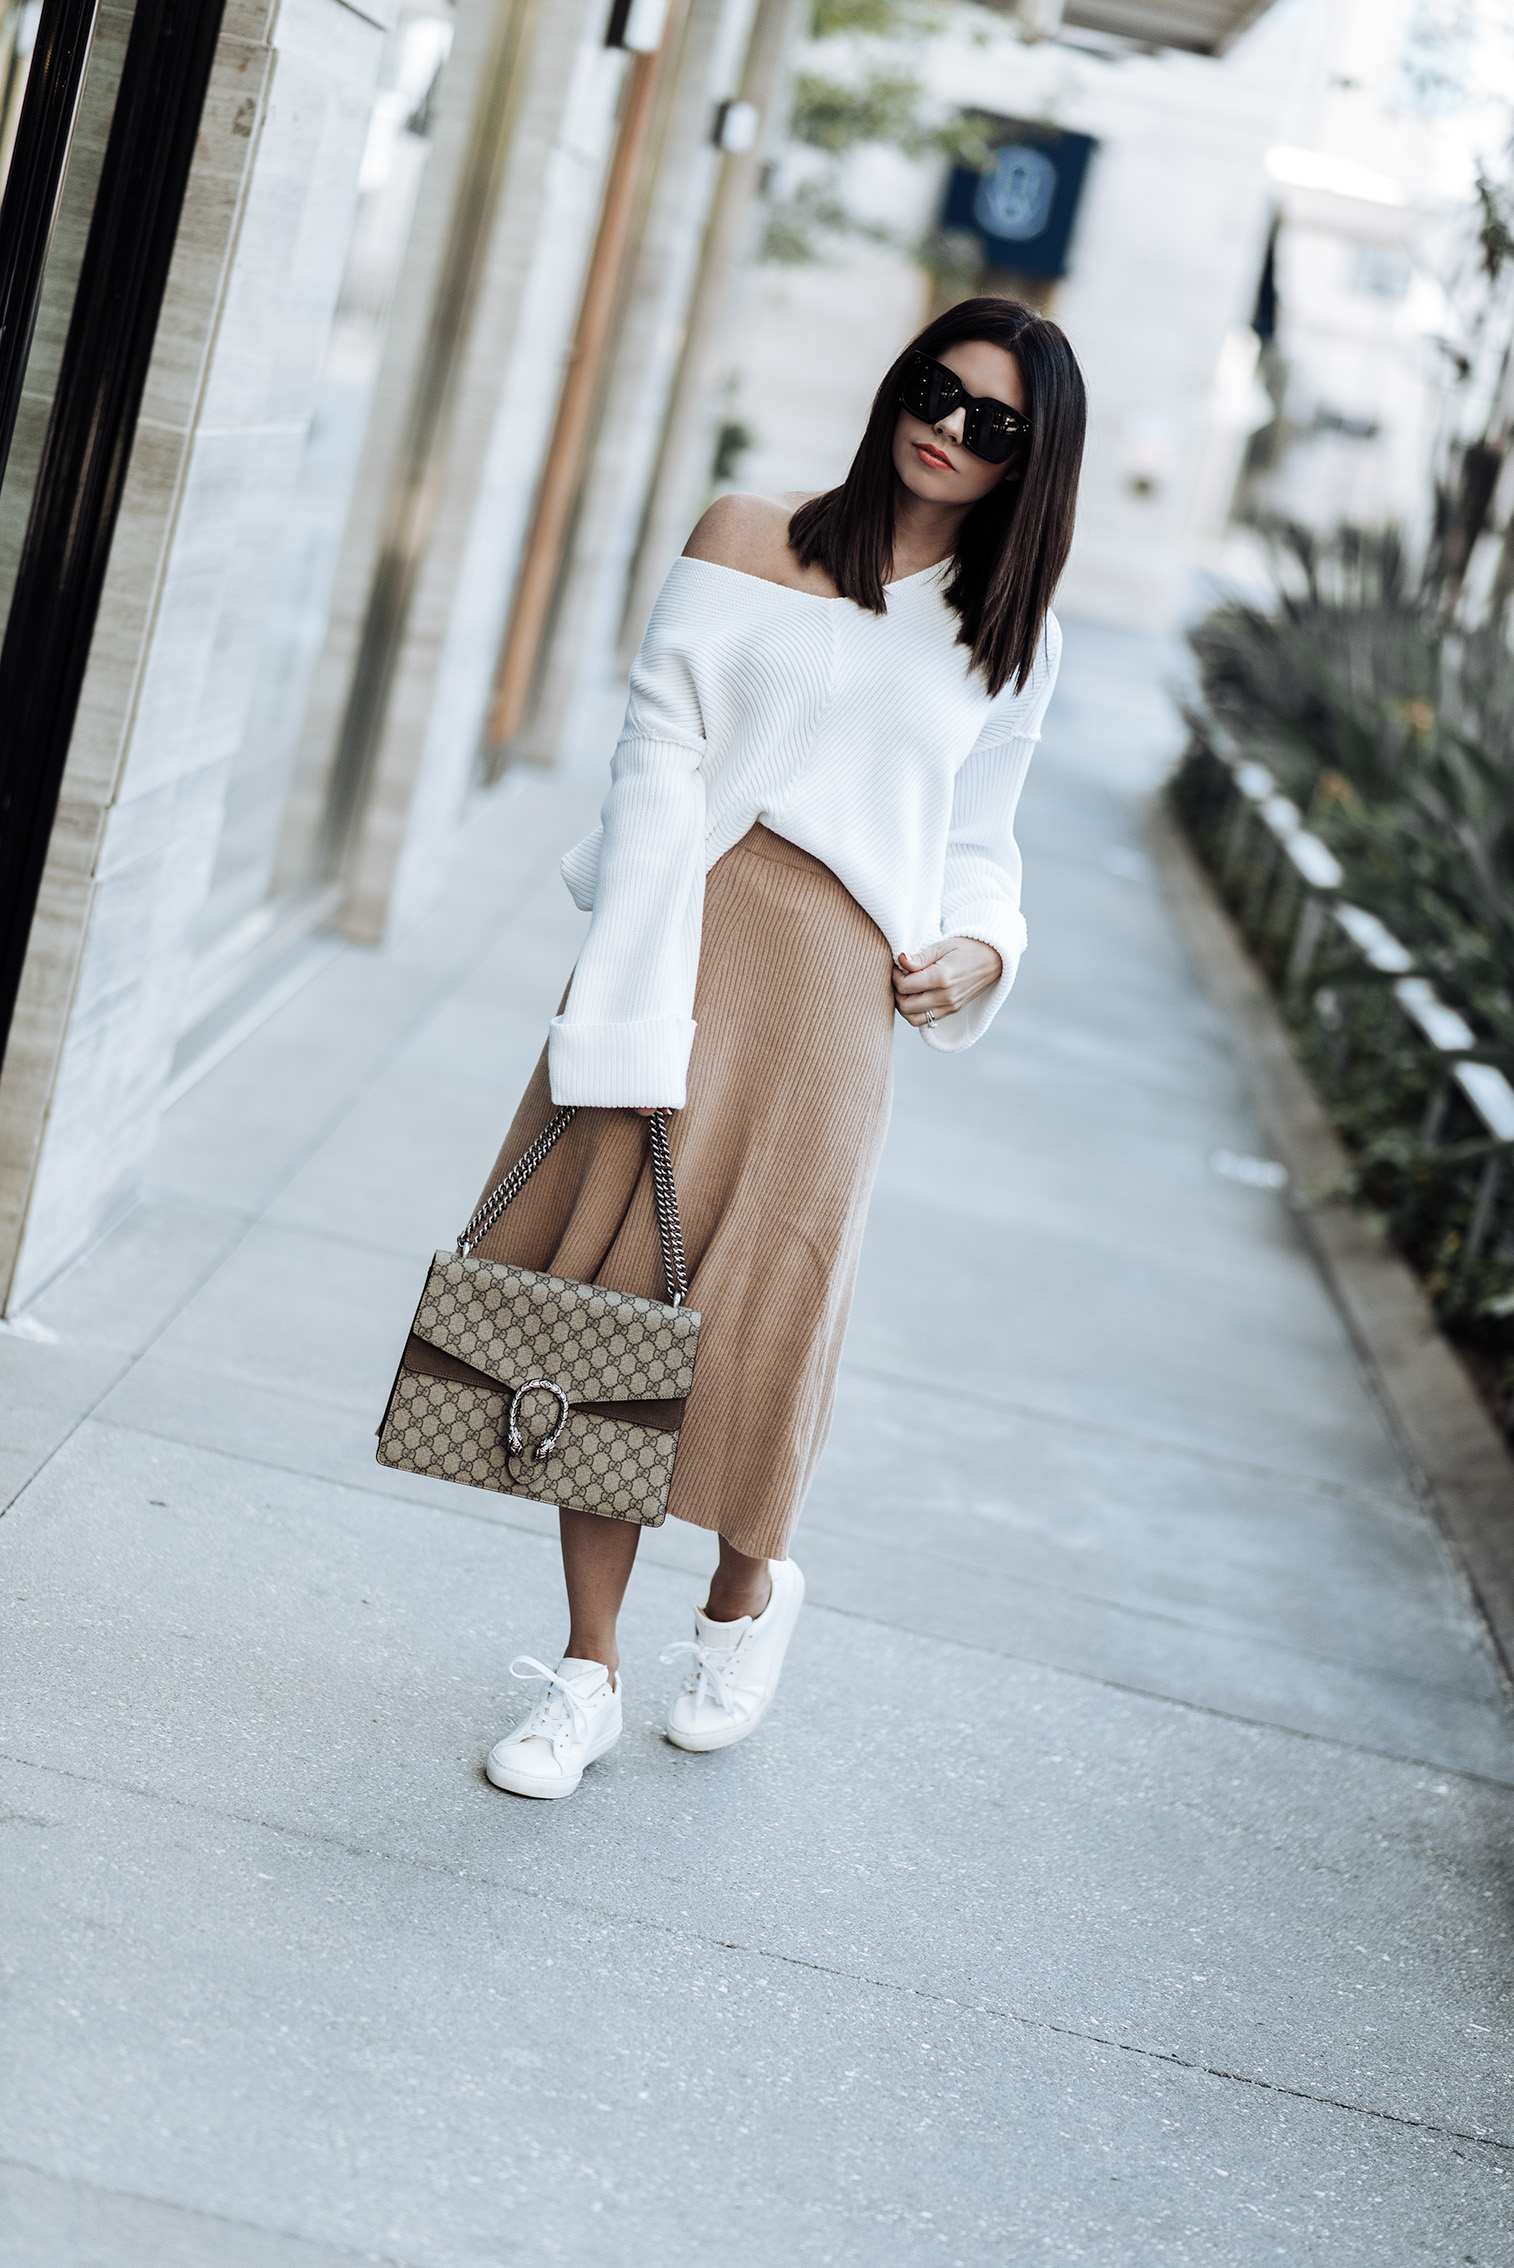 Friday feels   Shop the look   The color of this maxi skirt is so perfect for fall! I love how minimal and clean it looks paired with this oversized knit (also on sale). This is probably my favorite look for those days you want to be cozy but still look put together! It's so effortlessly clean and minimal.